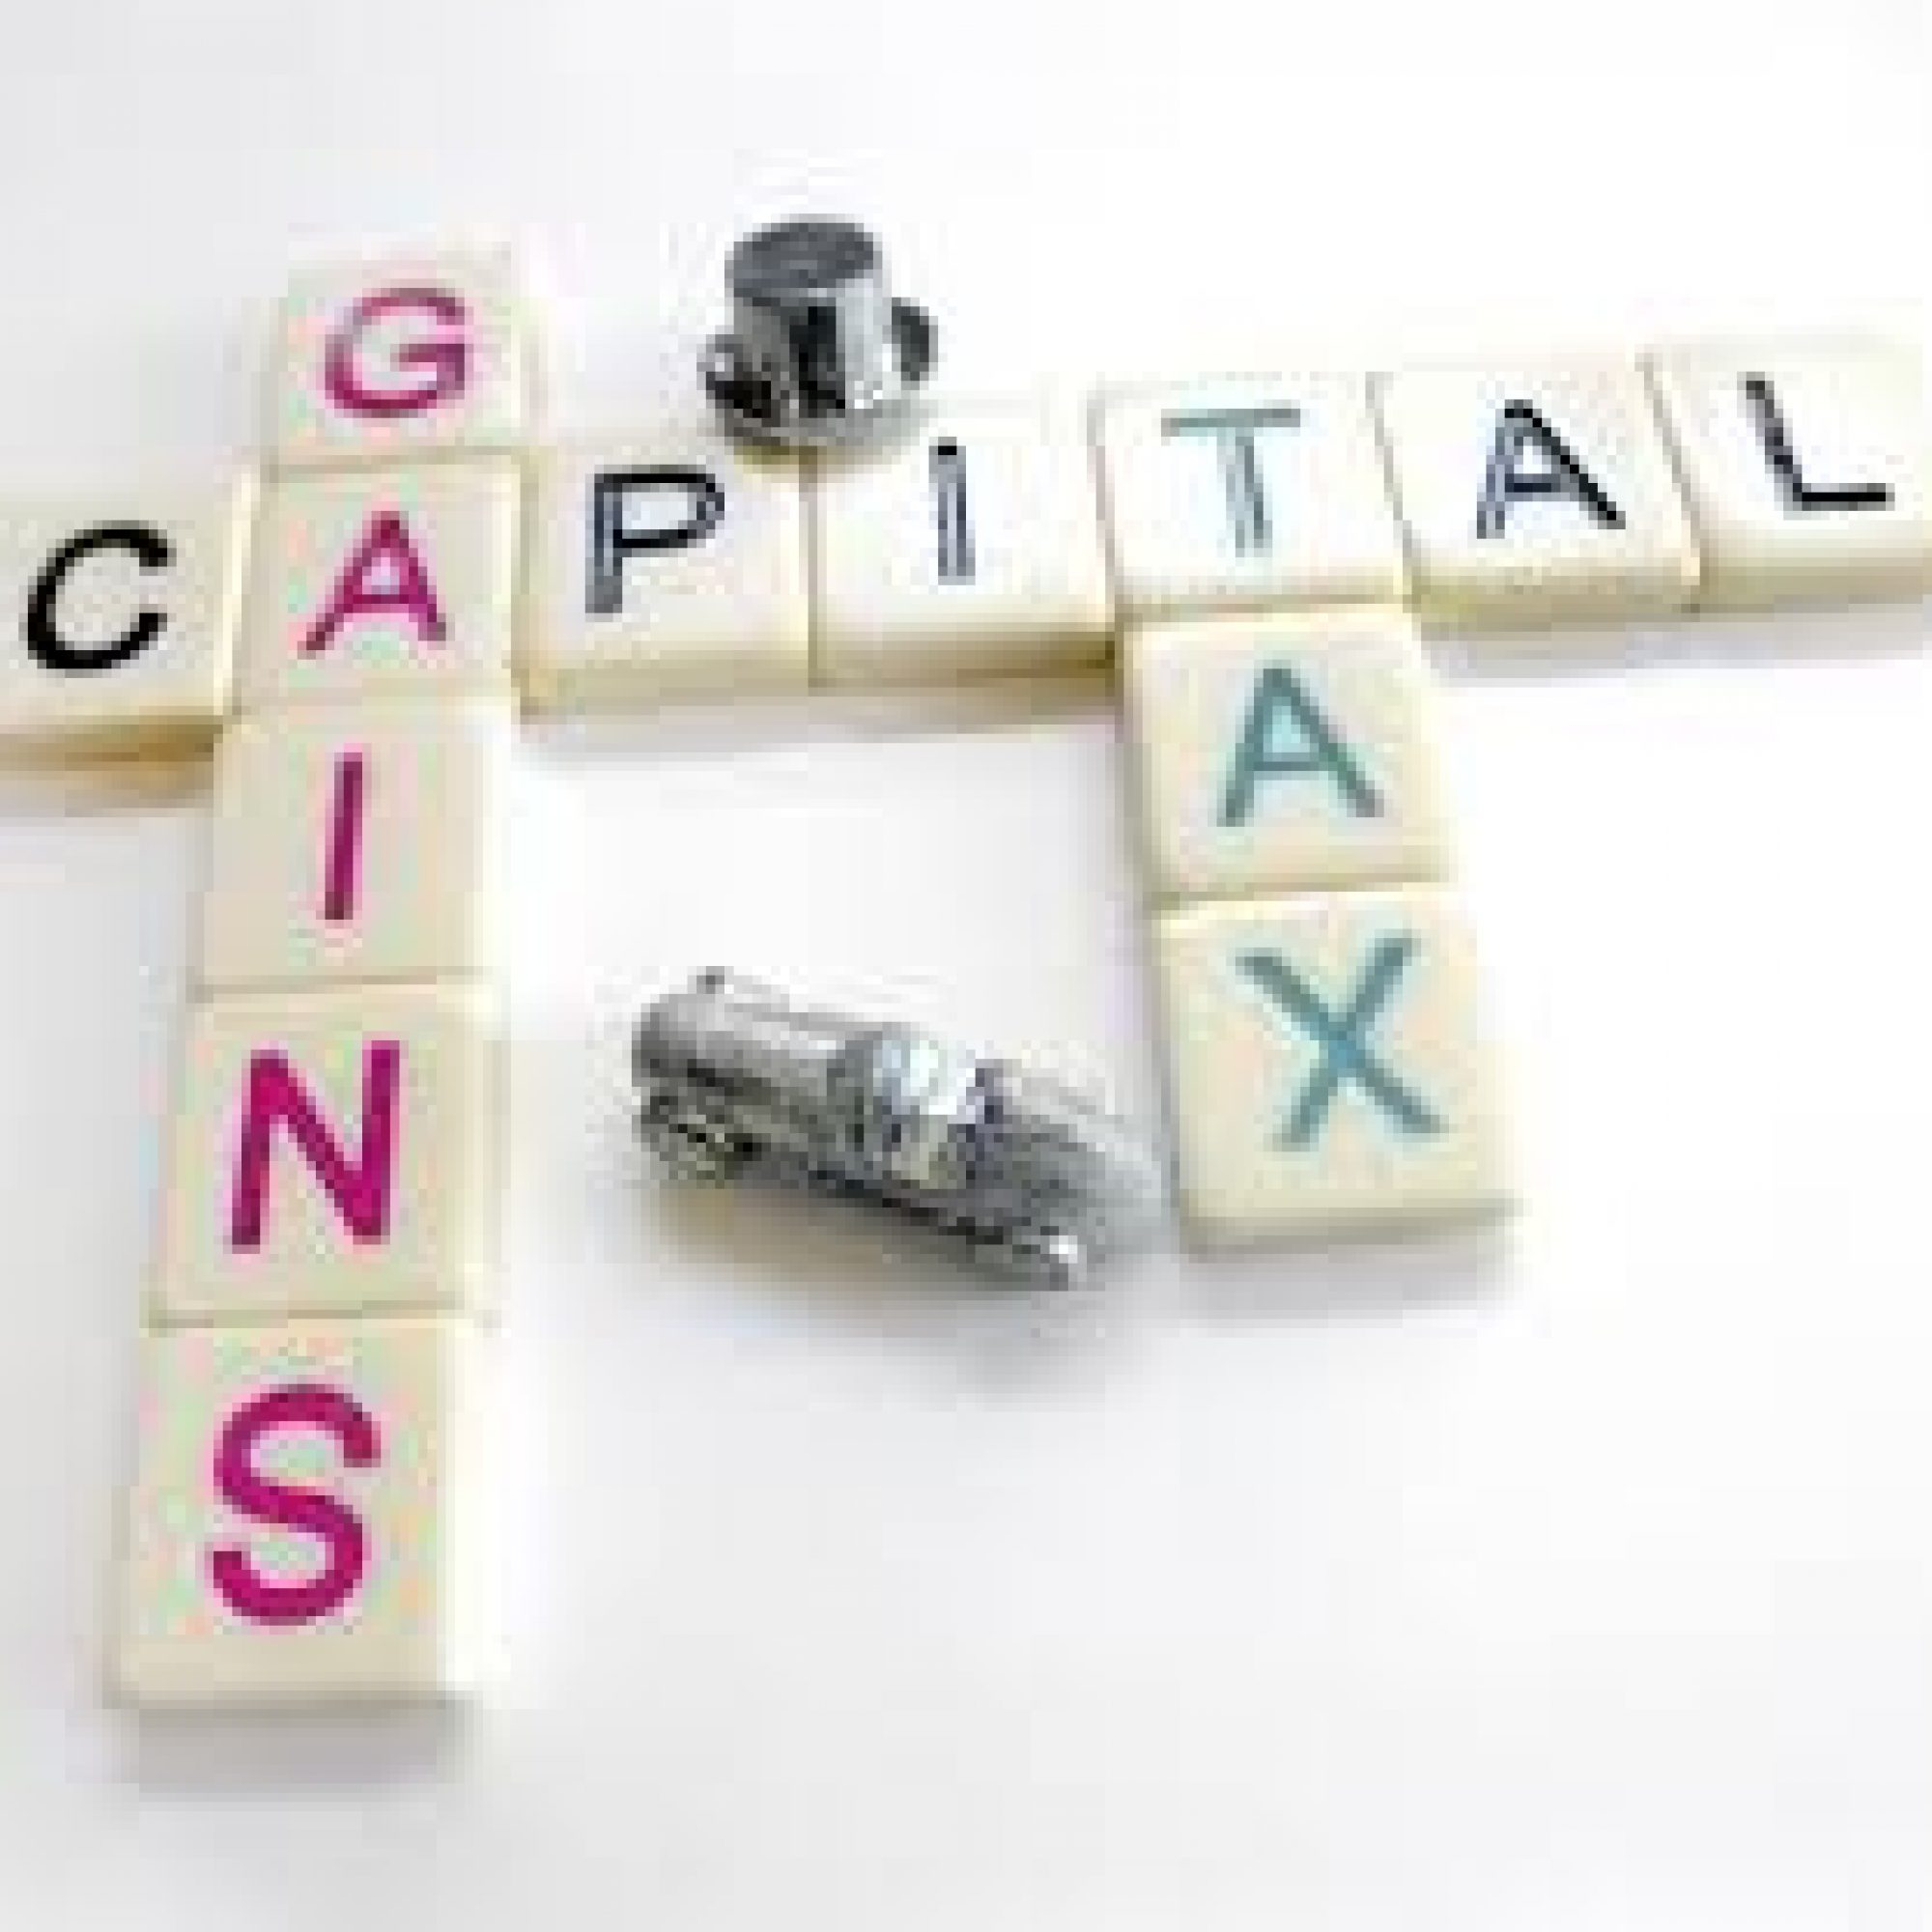 Capital Gains Tax, CGT, Accountant, tax advisor, business consultant in London, Hackney, Ilford, Barking, Romford, England